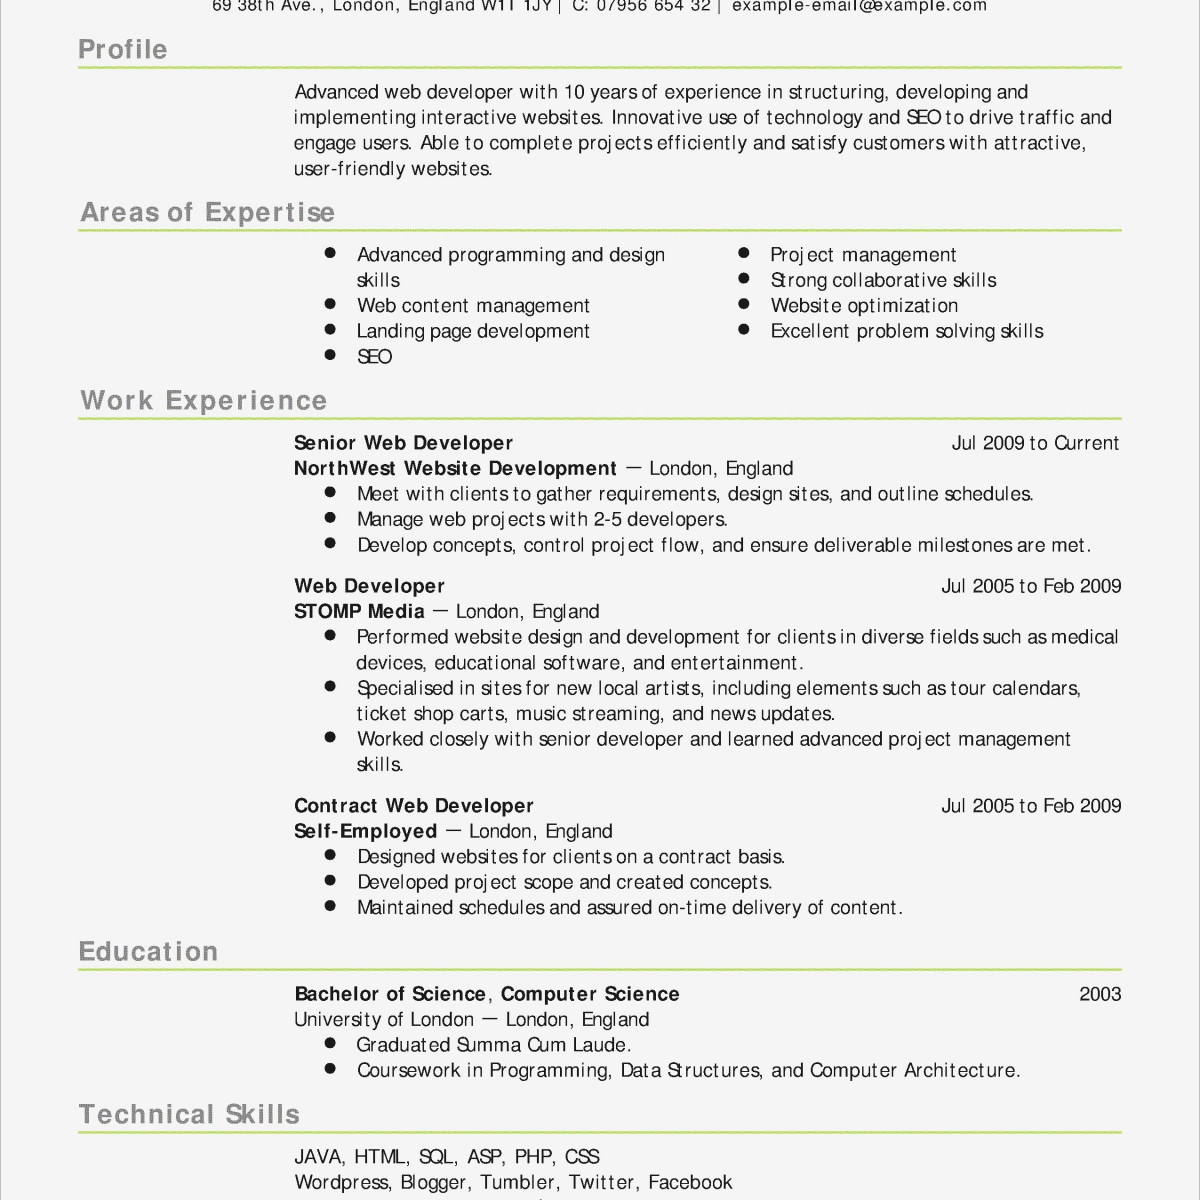 A Perfect Resume - How to Cancel My Perfect Resume Subscription Elegant My Perfect